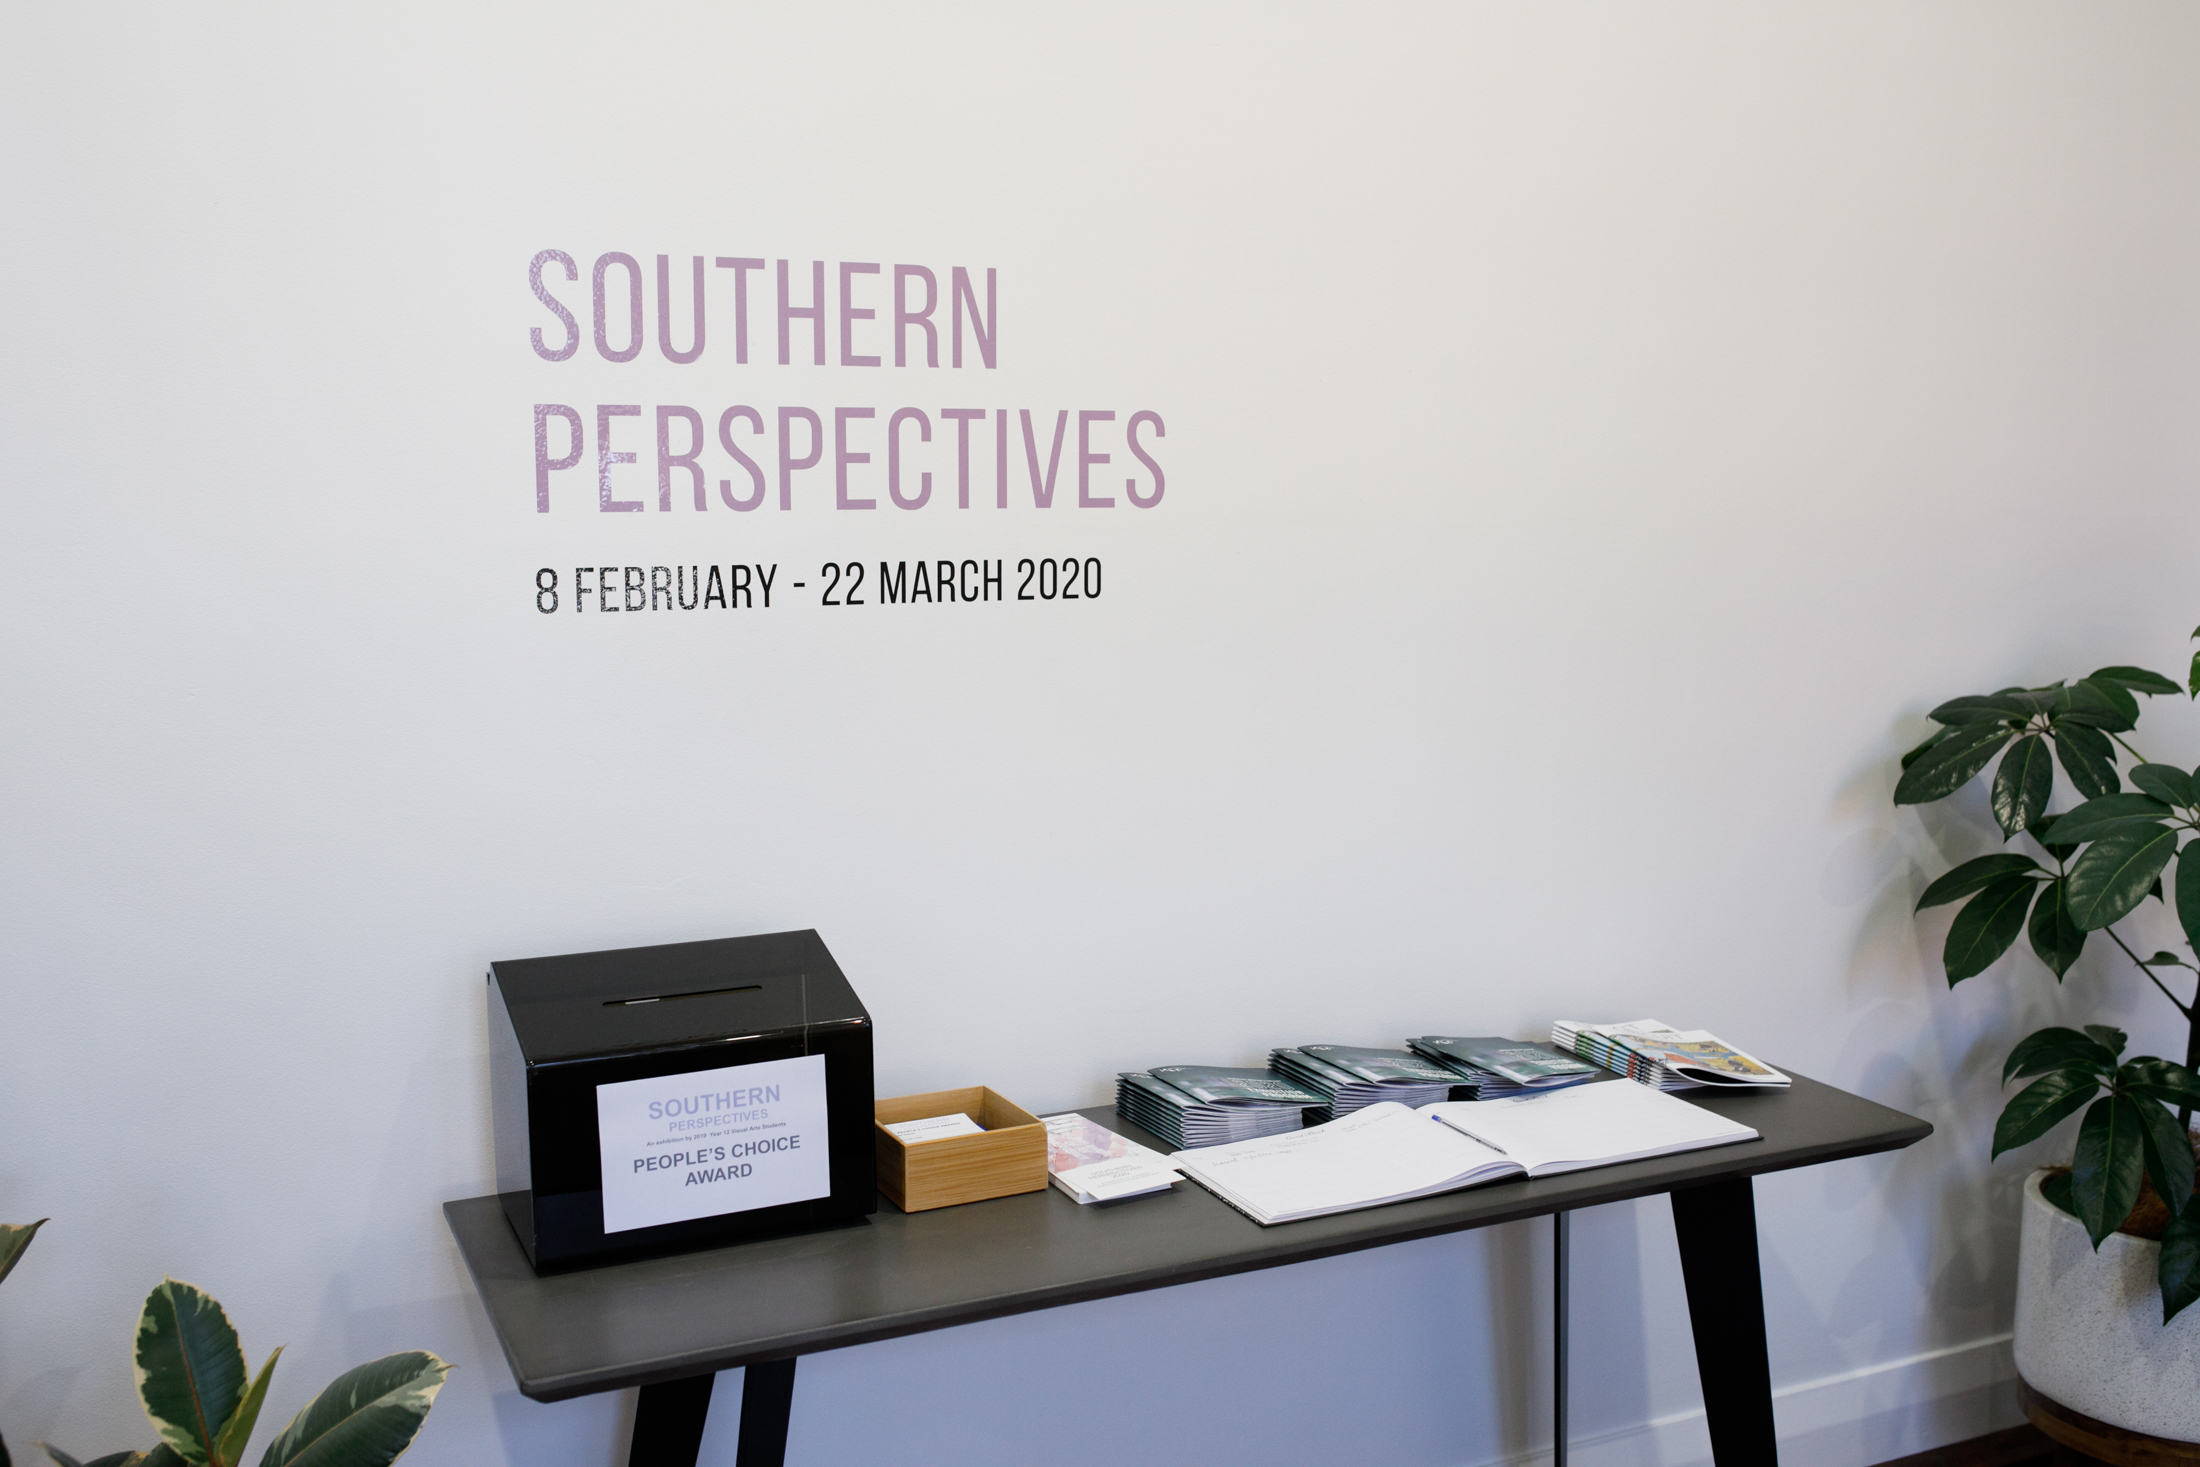 Southern_Perspectives_2020_websize-001